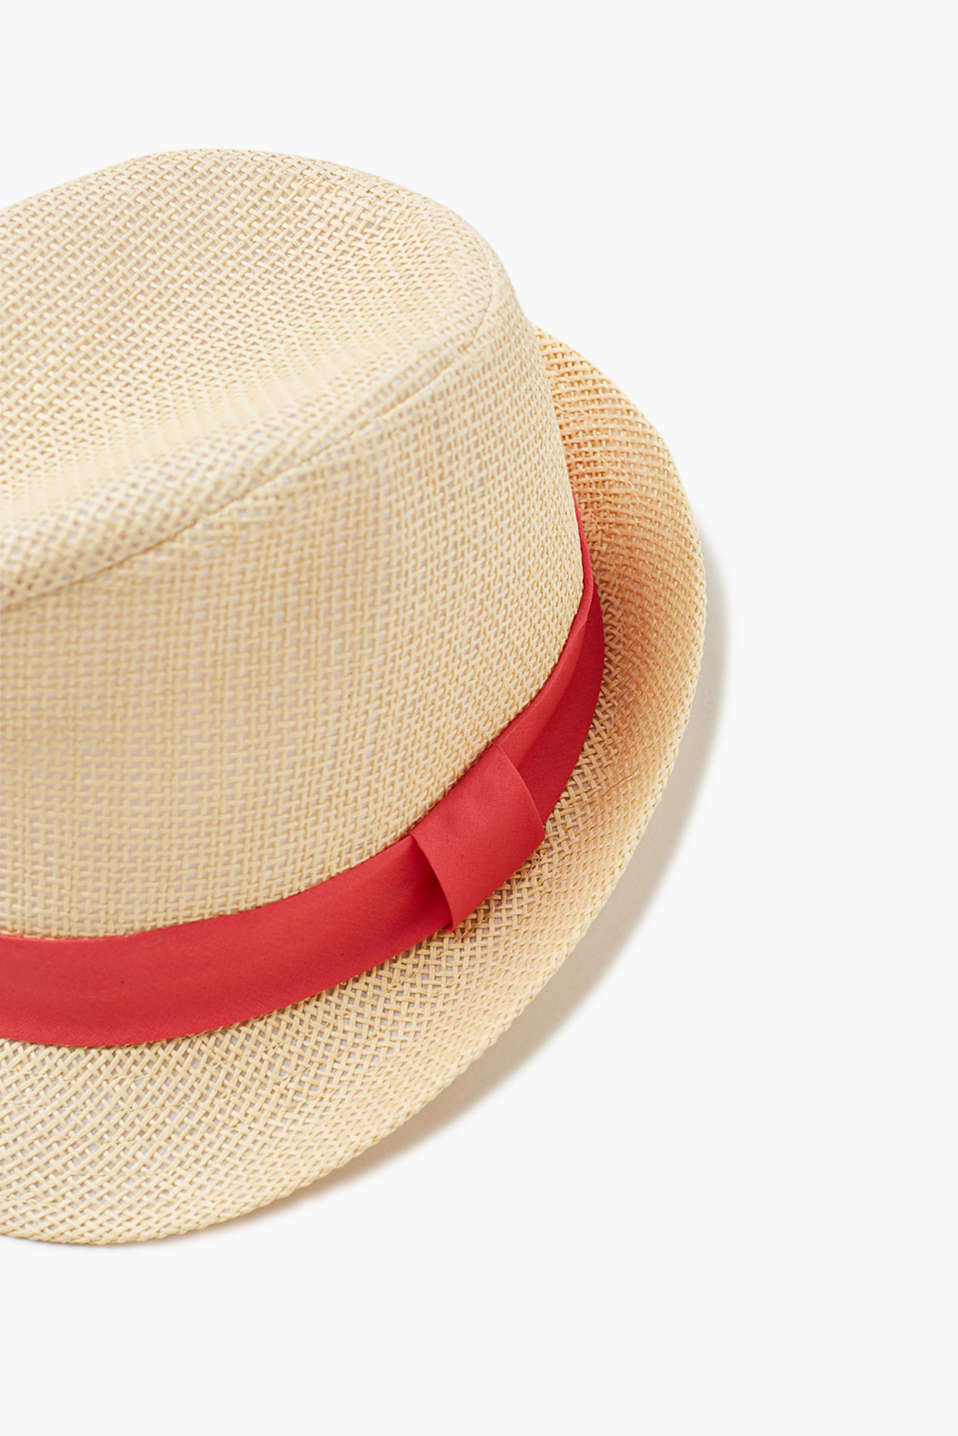 Trilby hat in a straw look